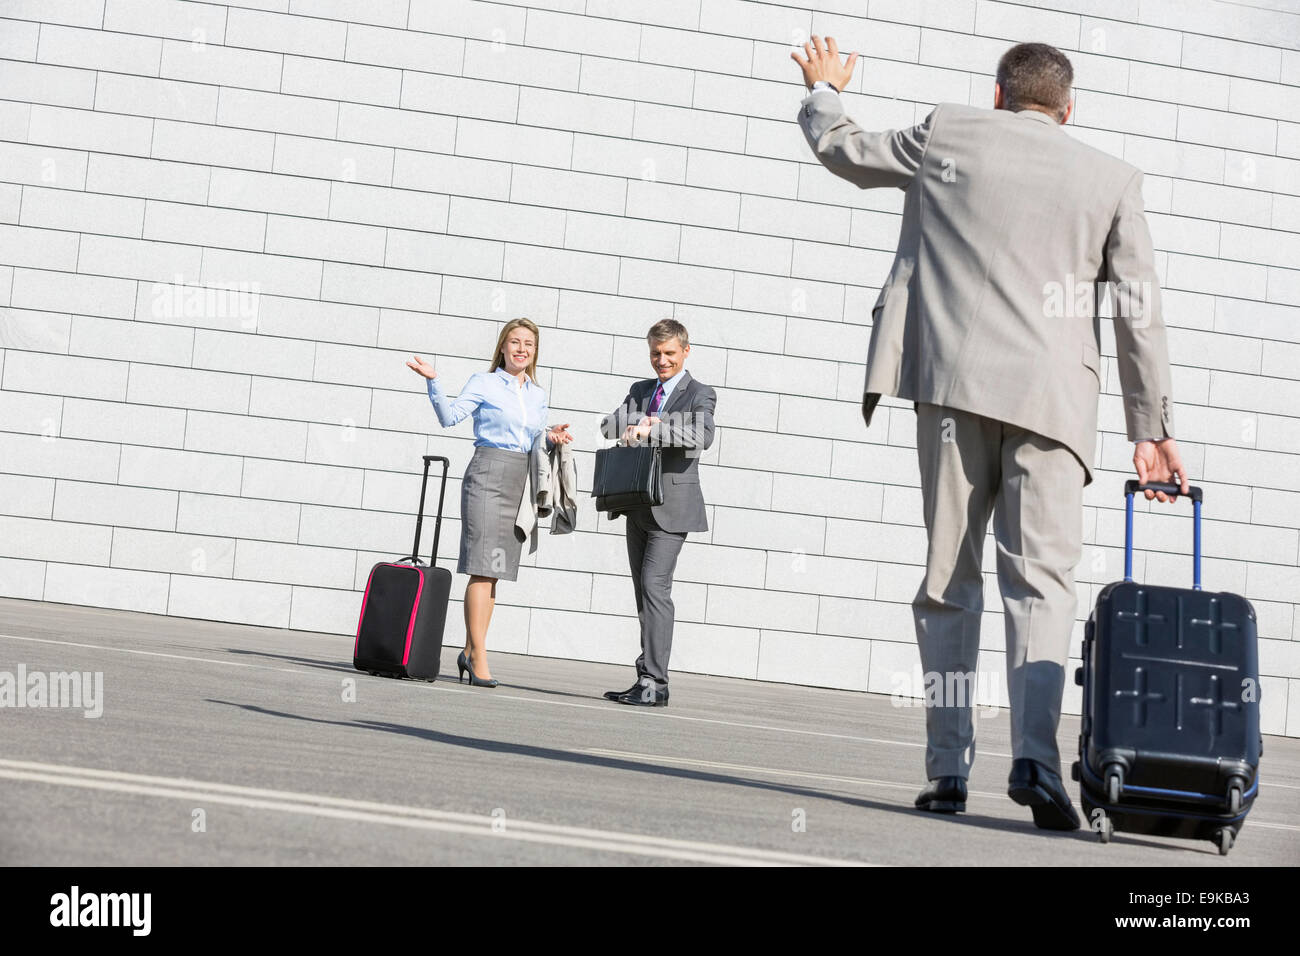 Rear view of businessman carrying luggage waving hand to colleagues - Stock Image